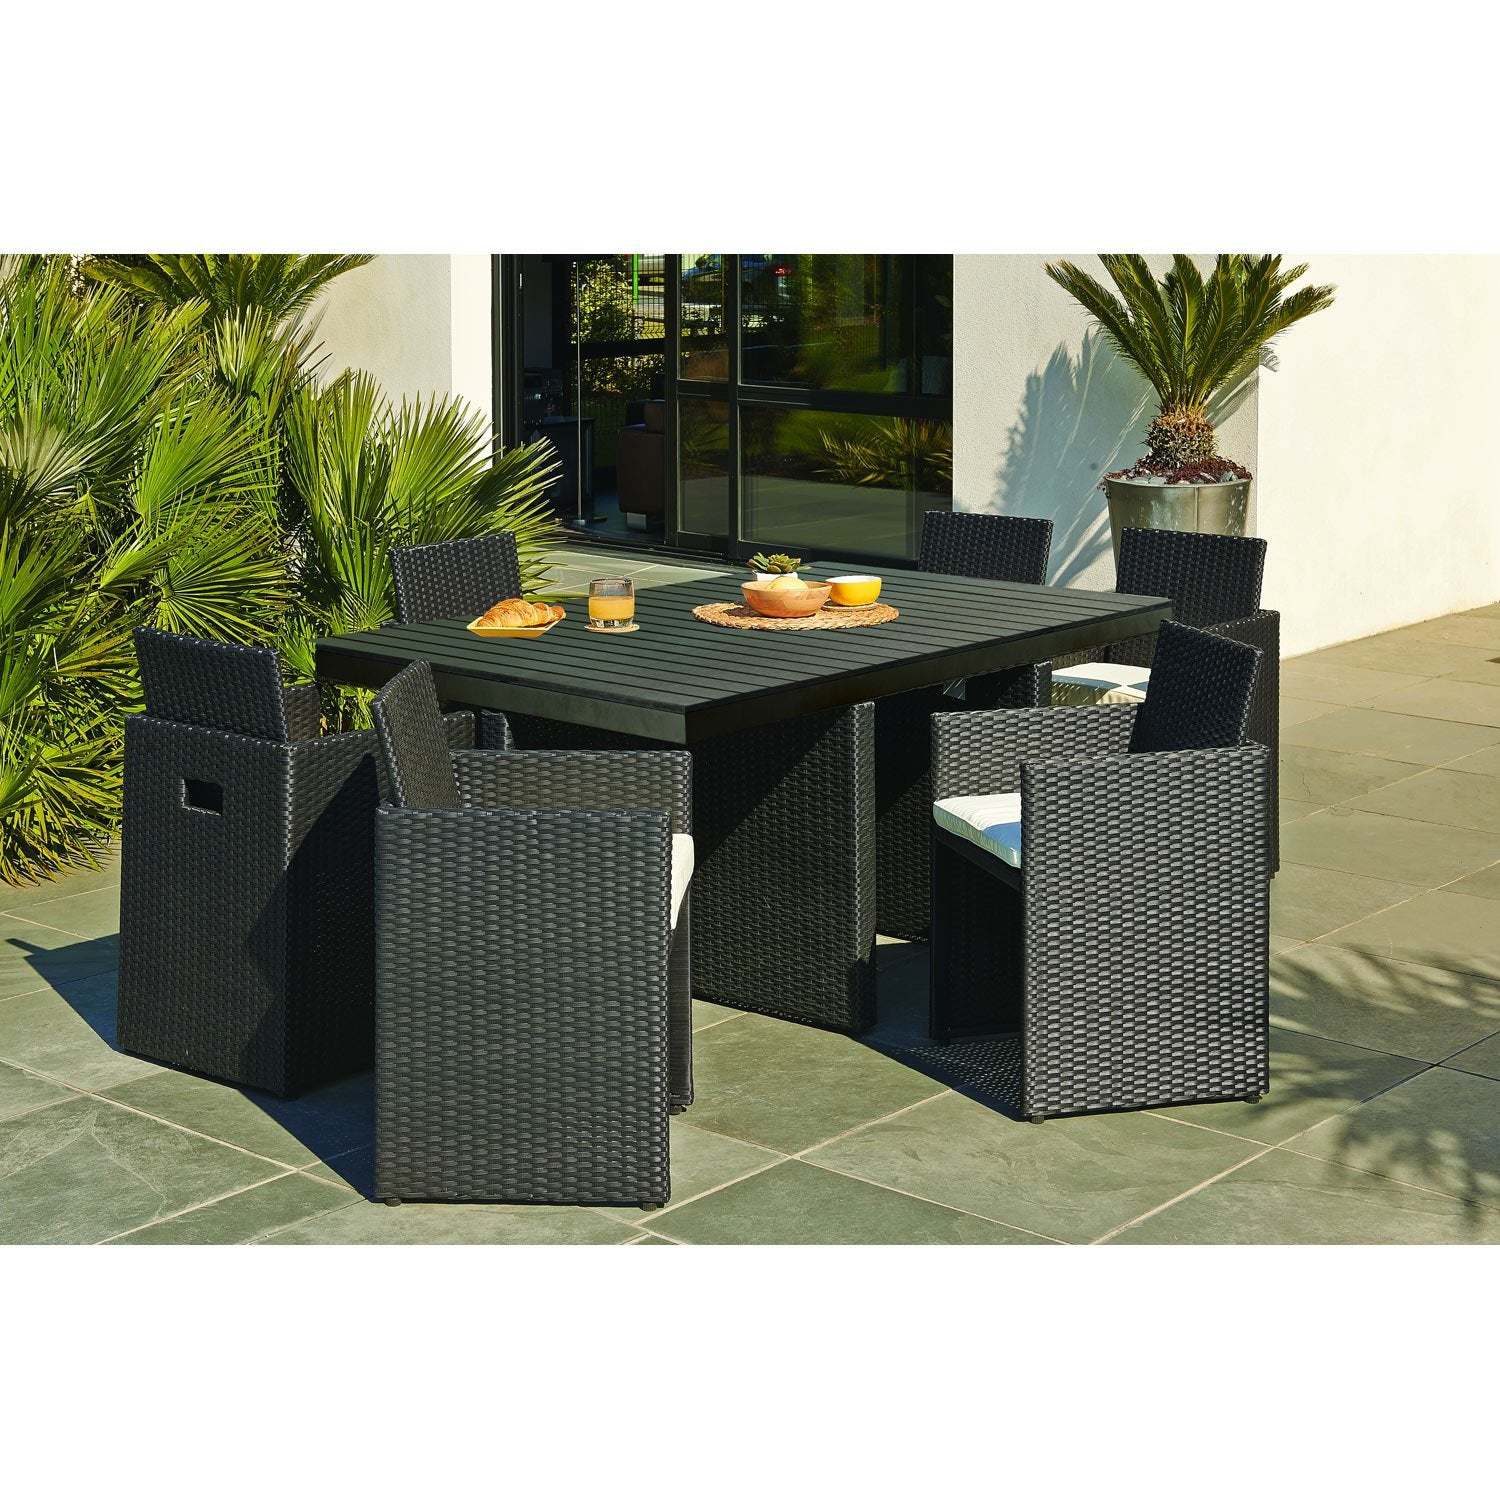 salon de jardin encastrable r sine tress e noir 1 table